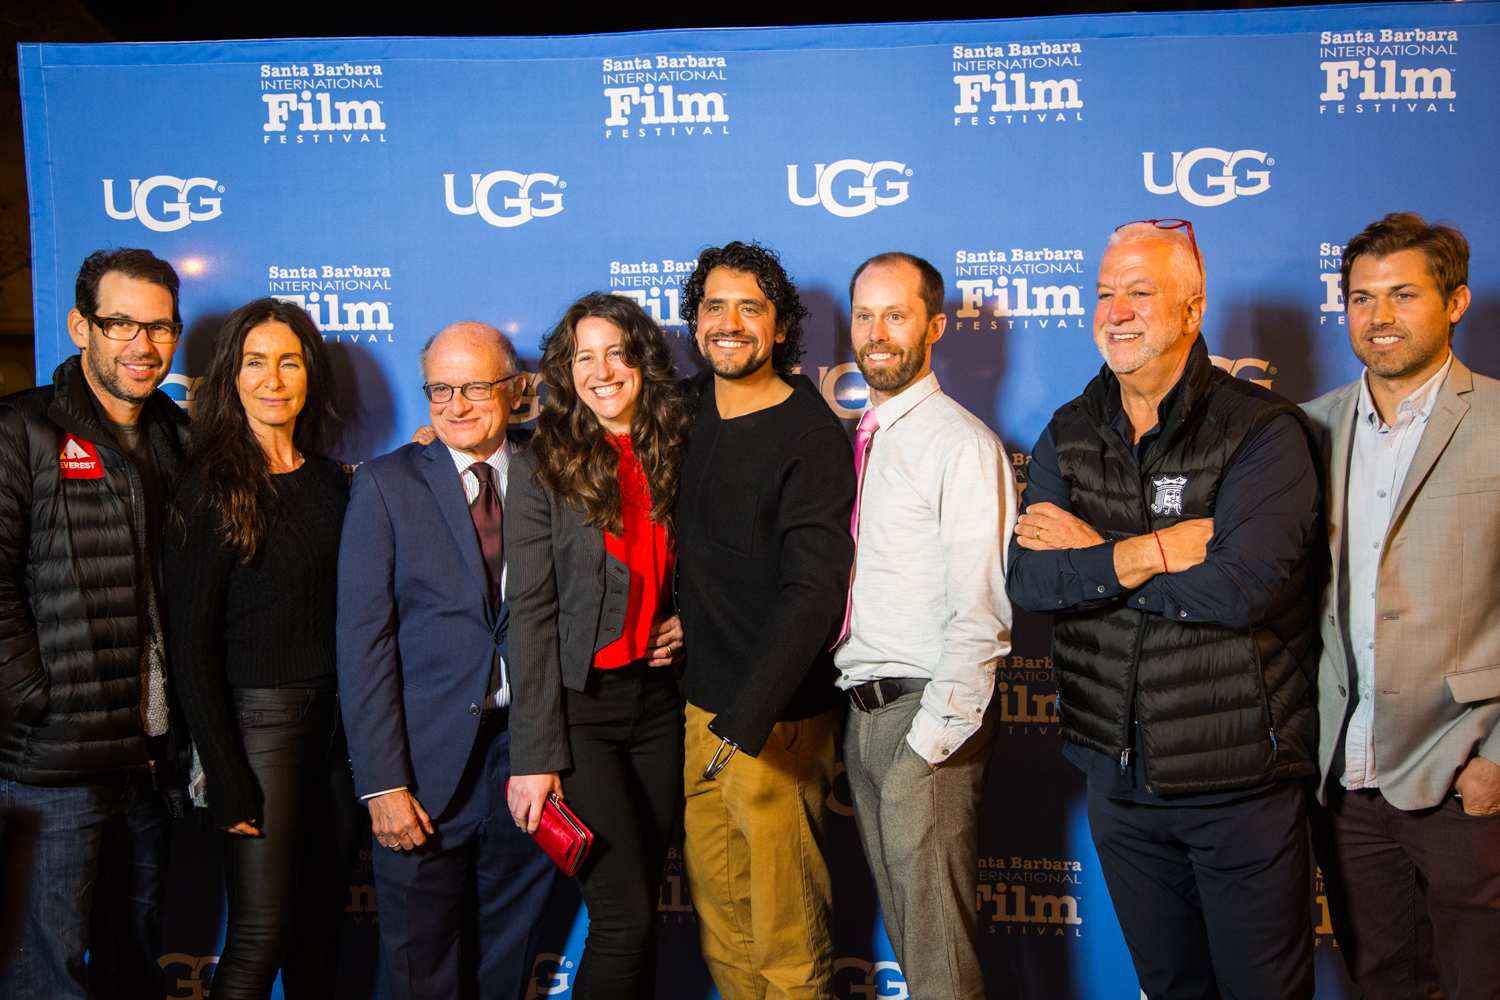 CHARGED Film Team! (from left to right) Doug Ellin, Teri Weinberg, Dennis Aig, Jennifer Jane, Eduardo Garcia, Phillip Baribeau, Peter Hochfelder, Scott Ballew